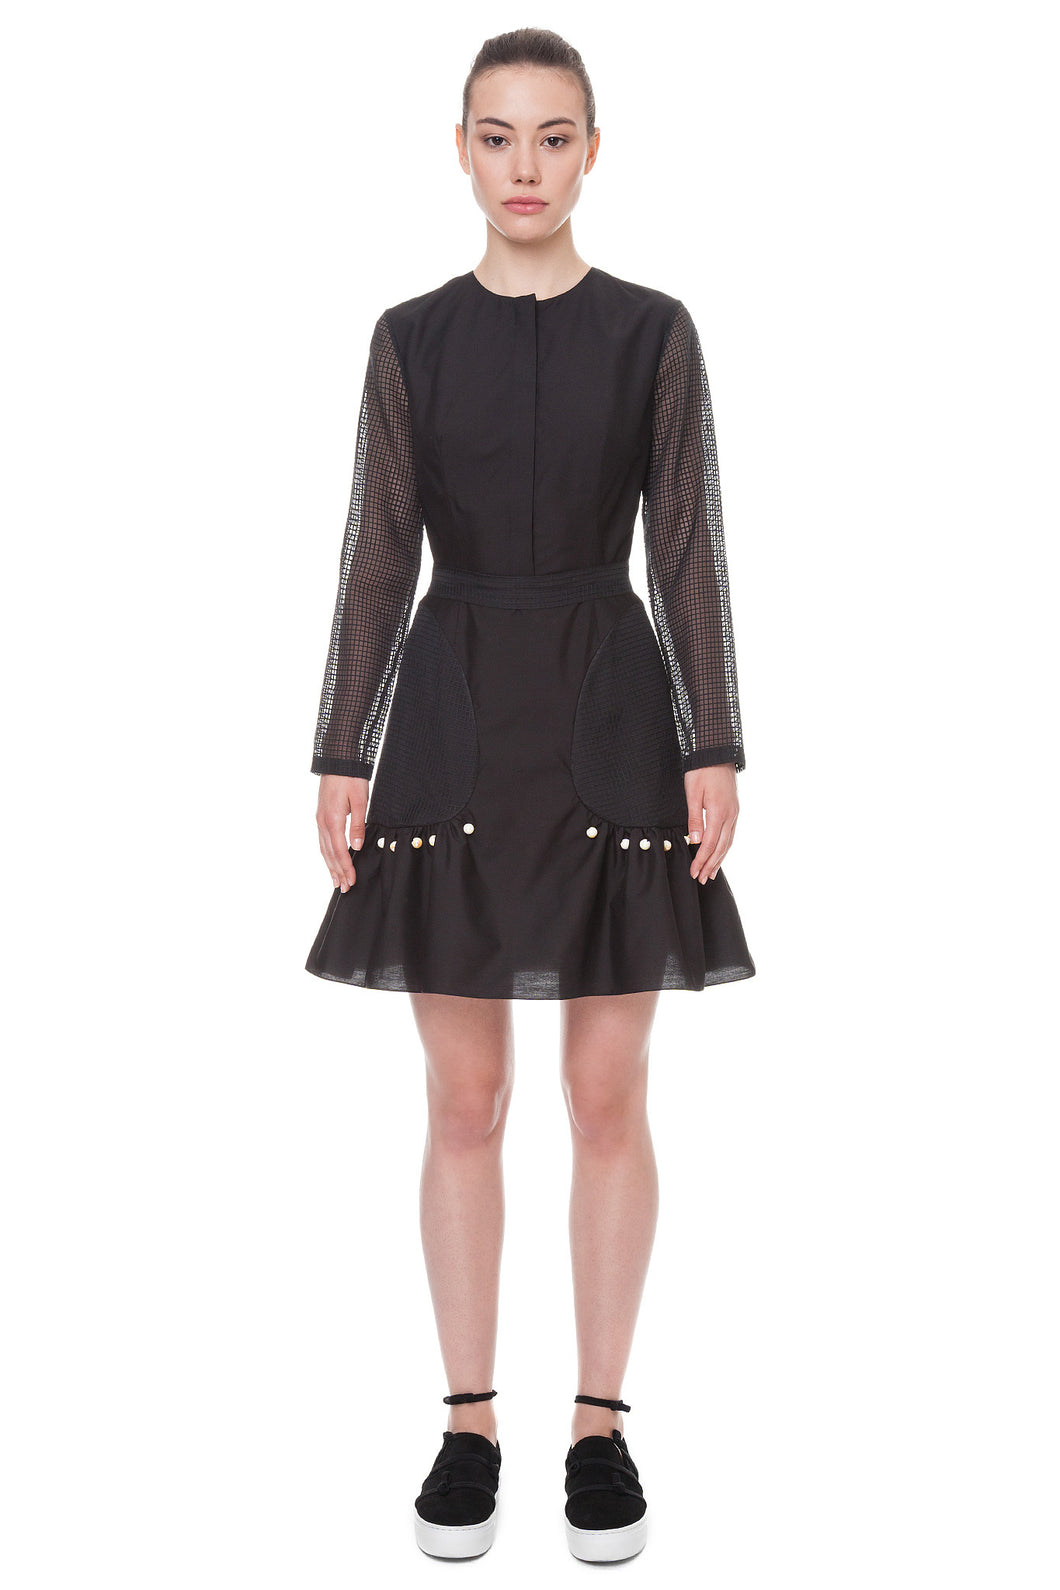 Mini dress with transparent sleeves - Anna K